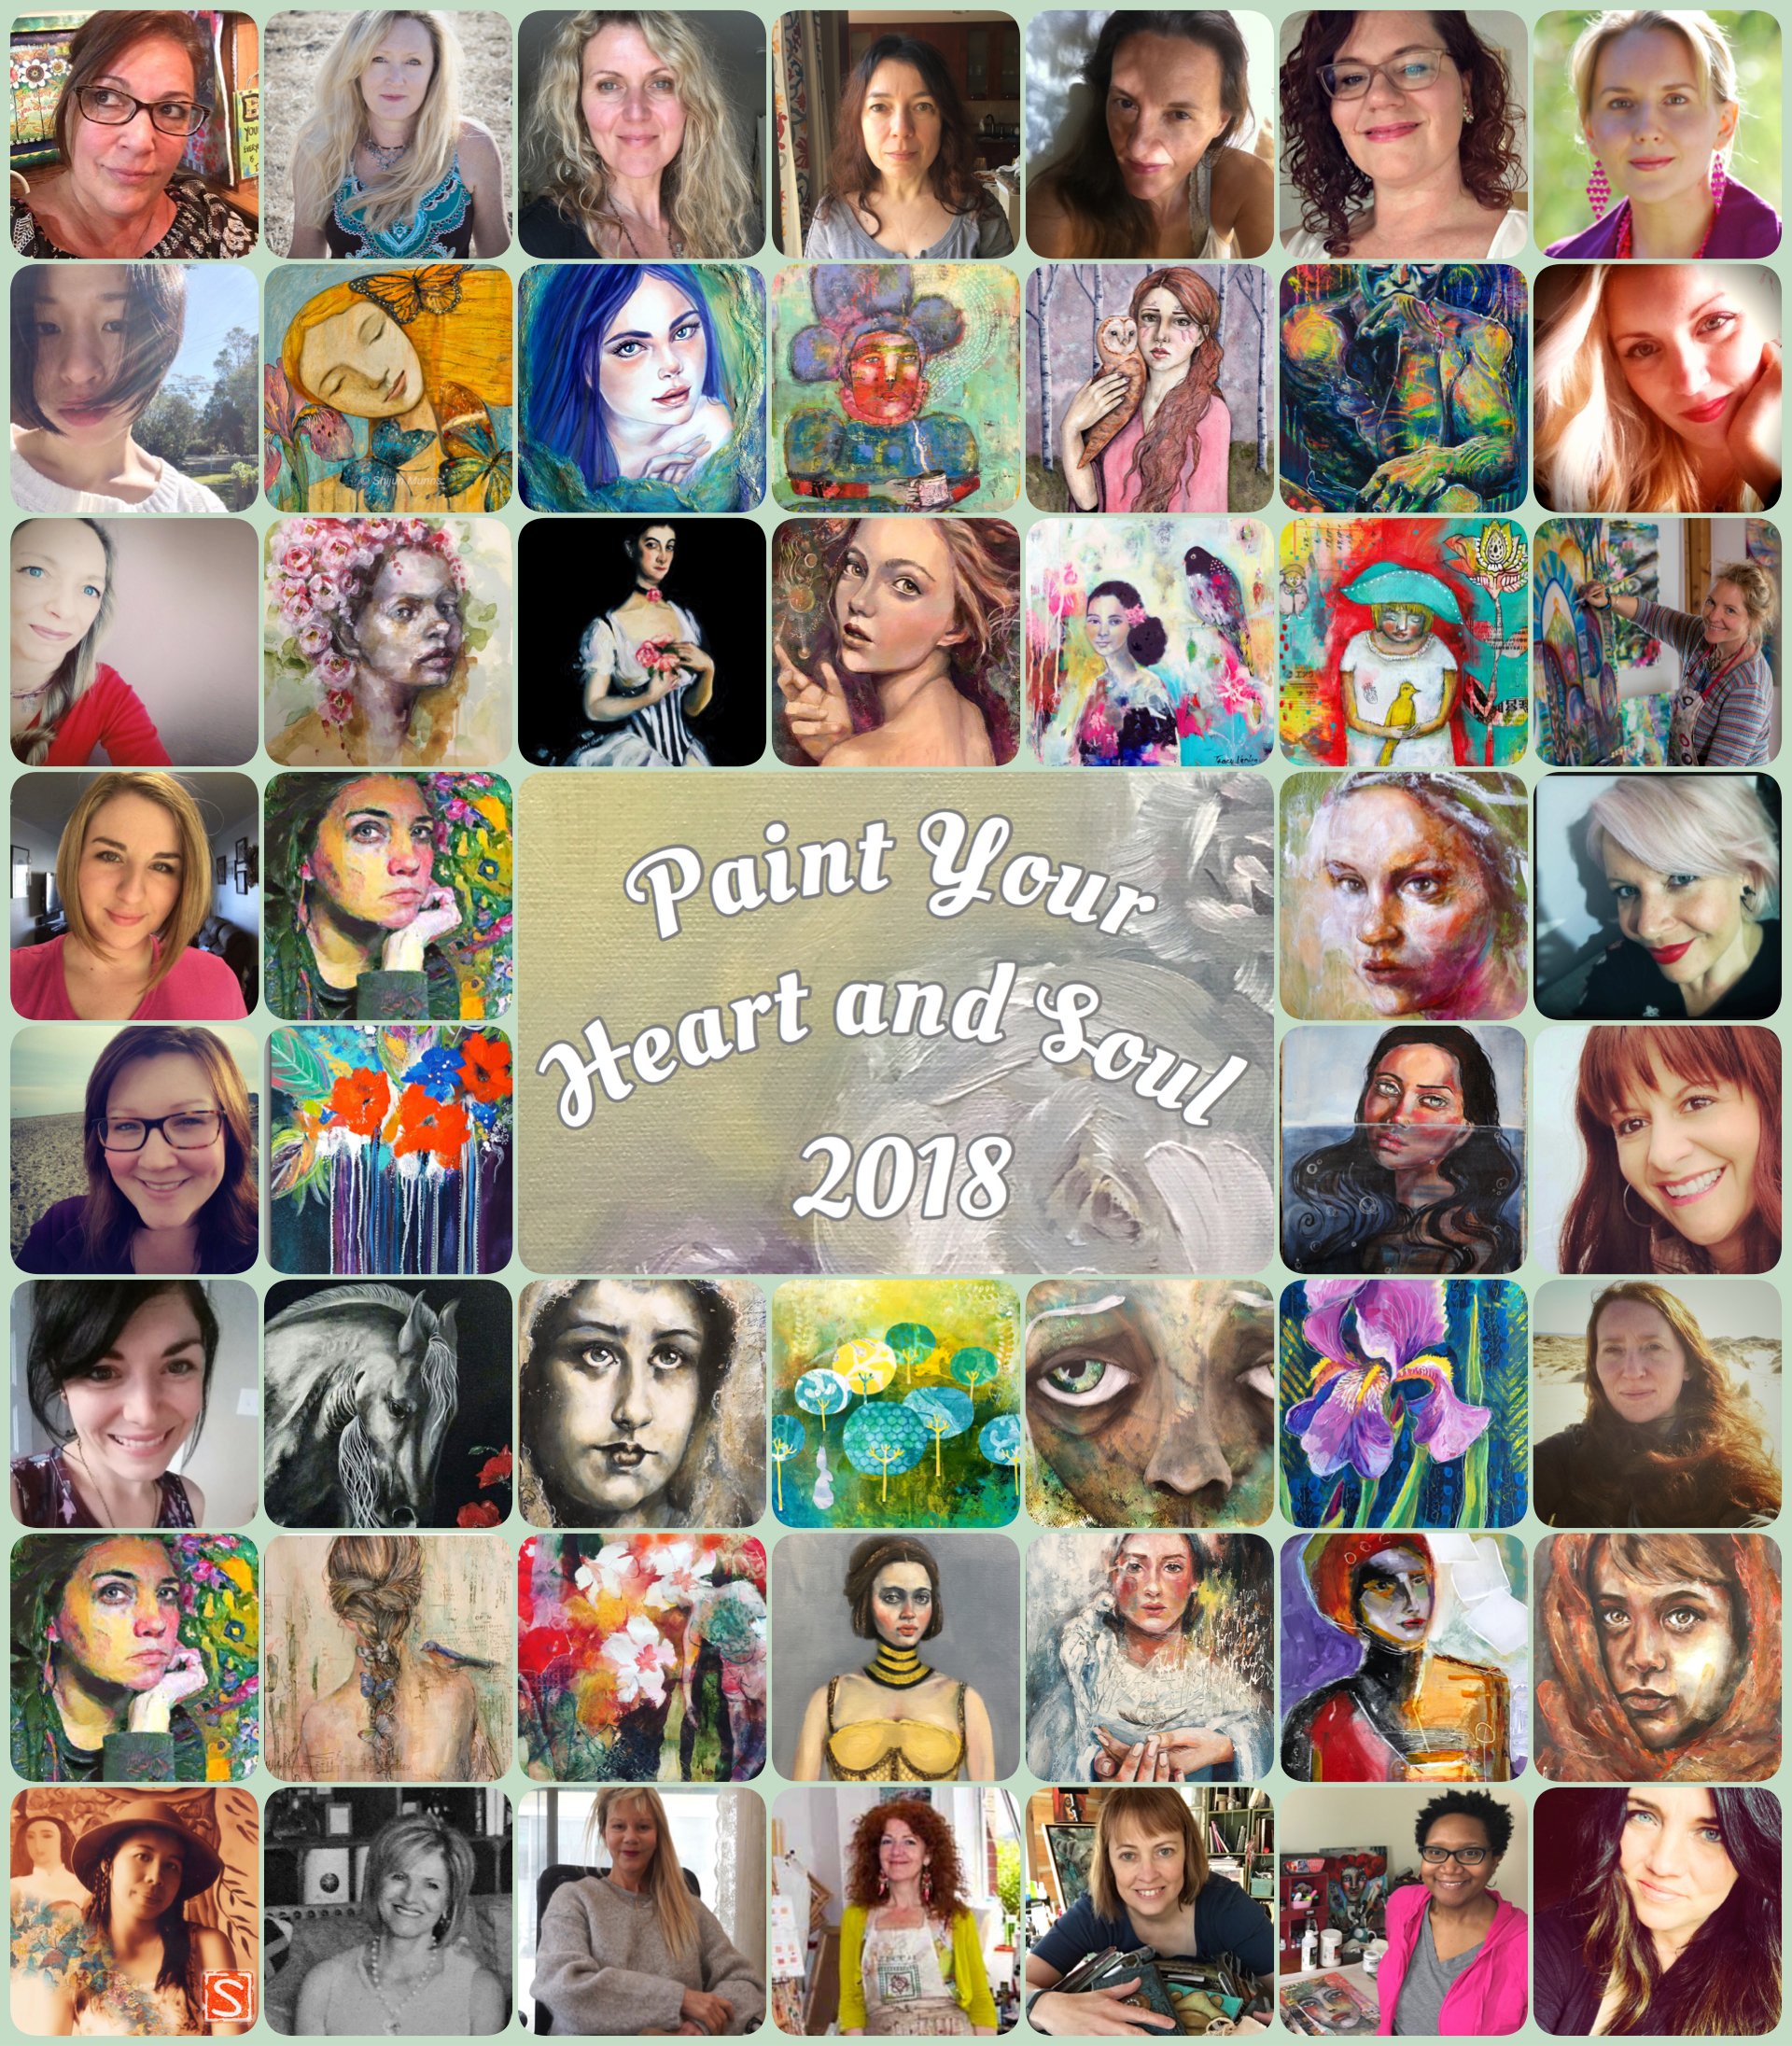 Paint Your Heart and Soul 2018 e-course. Great lineup of teachers! Click image for more info.